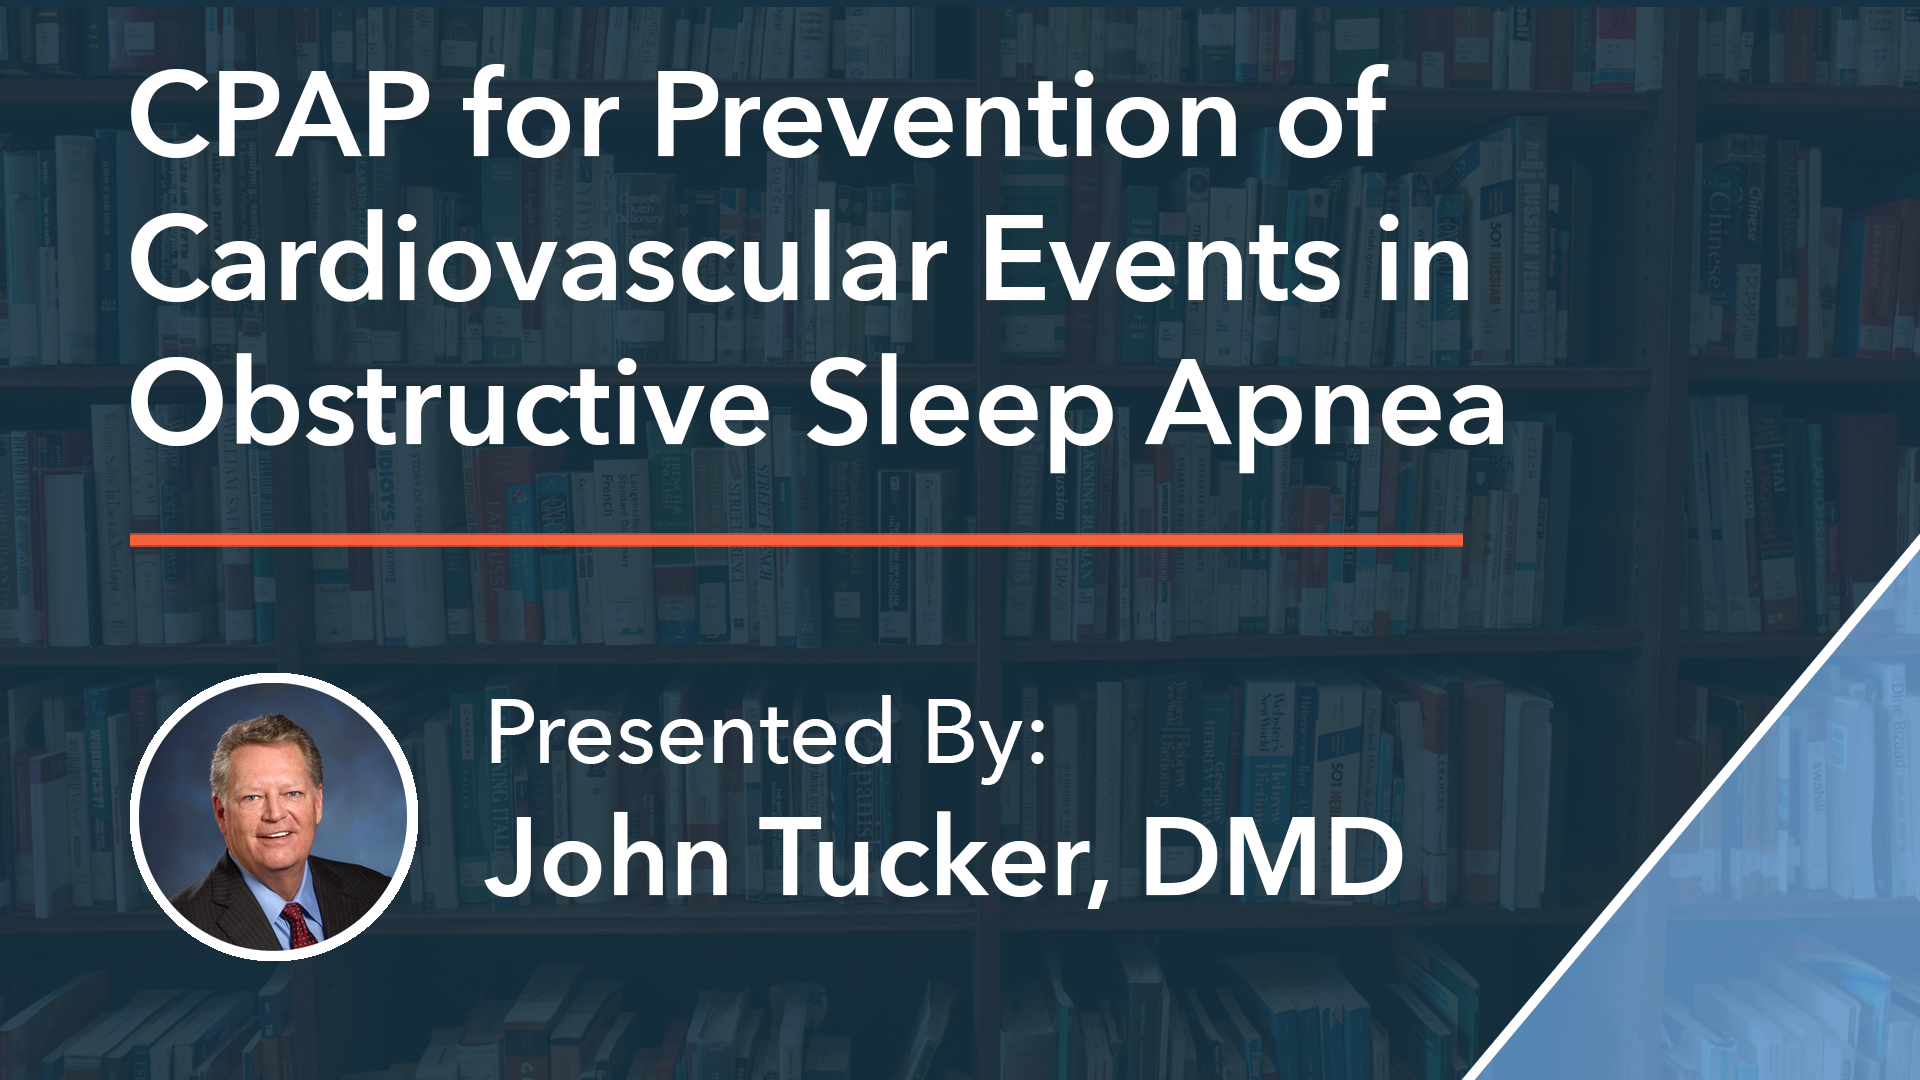 CPAP for Prevention of Cardiovascular Events in Obstructive Sleep Apnea Dr John Tucker